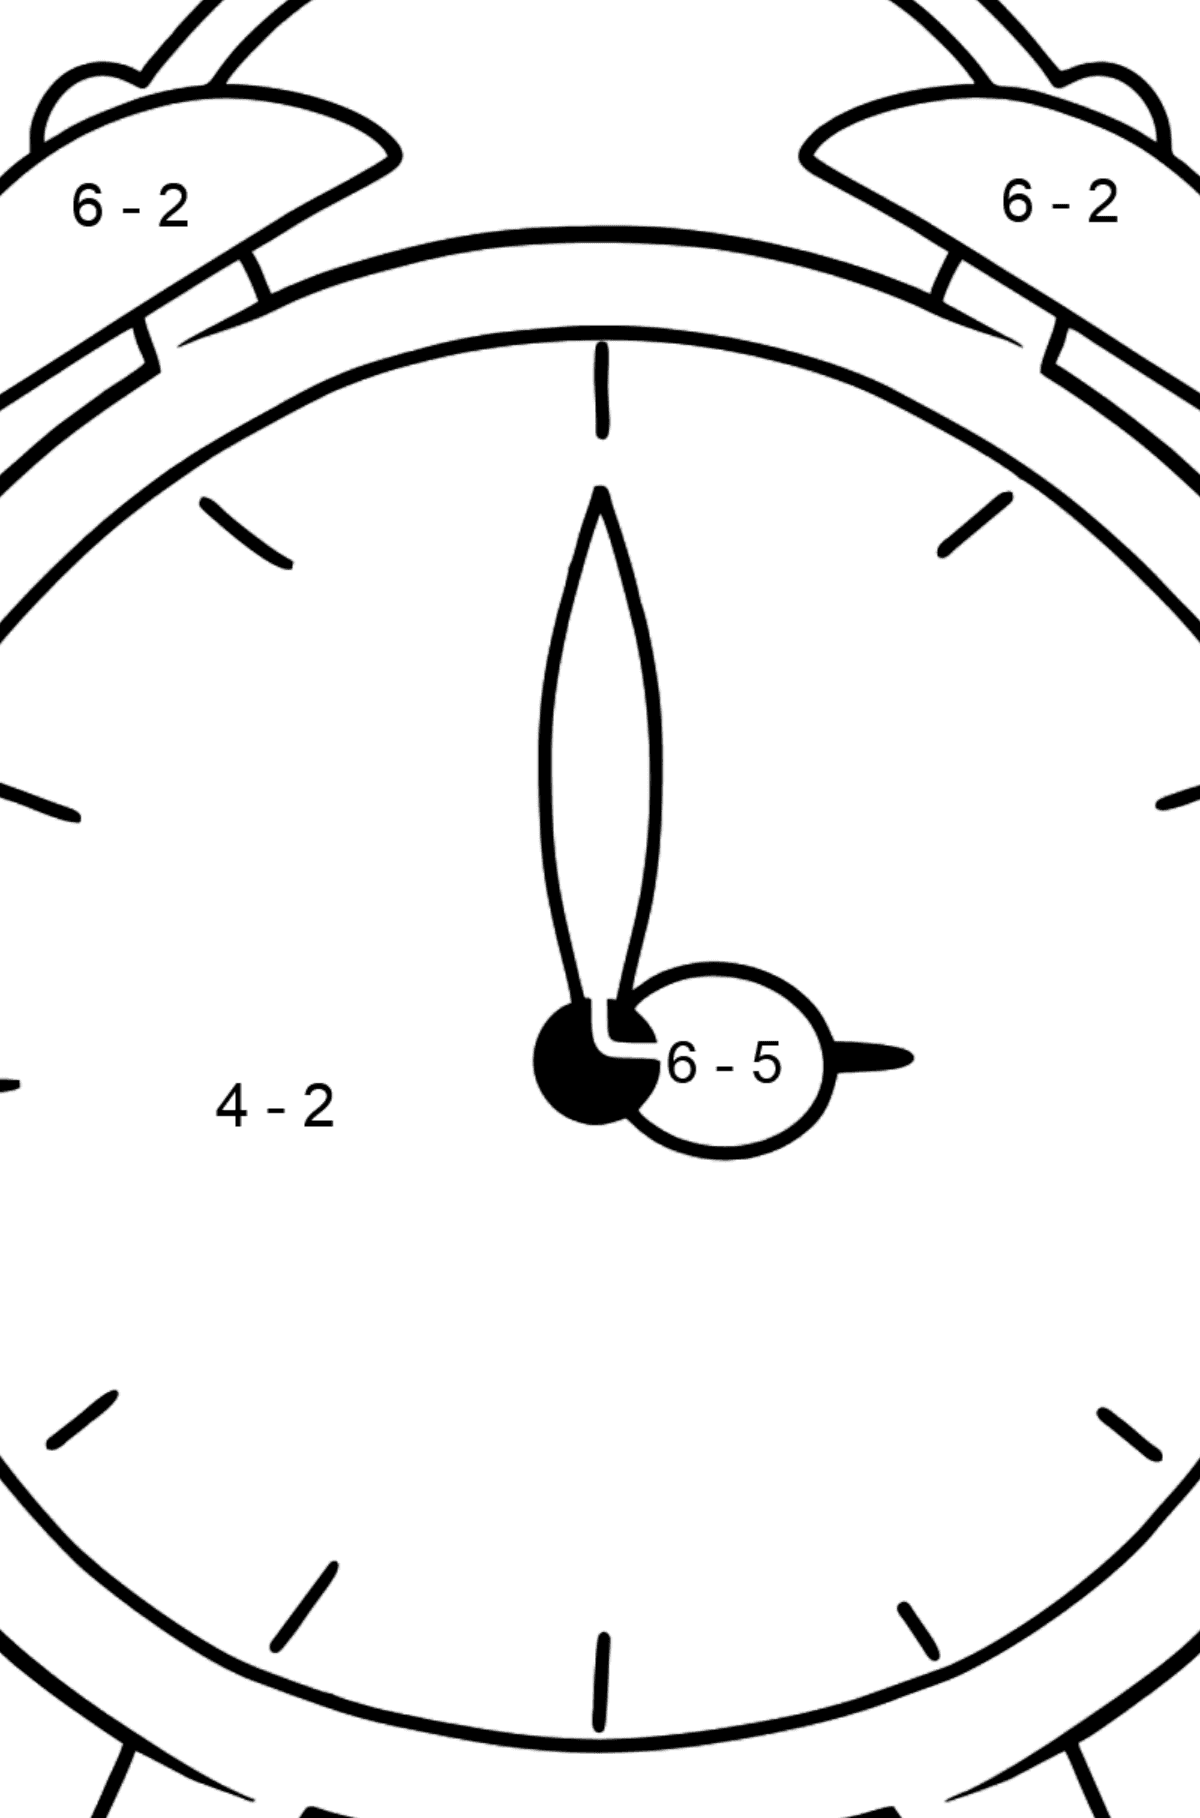 Alarm Clock coloring page - Math Coloring - Subtraction for Kids